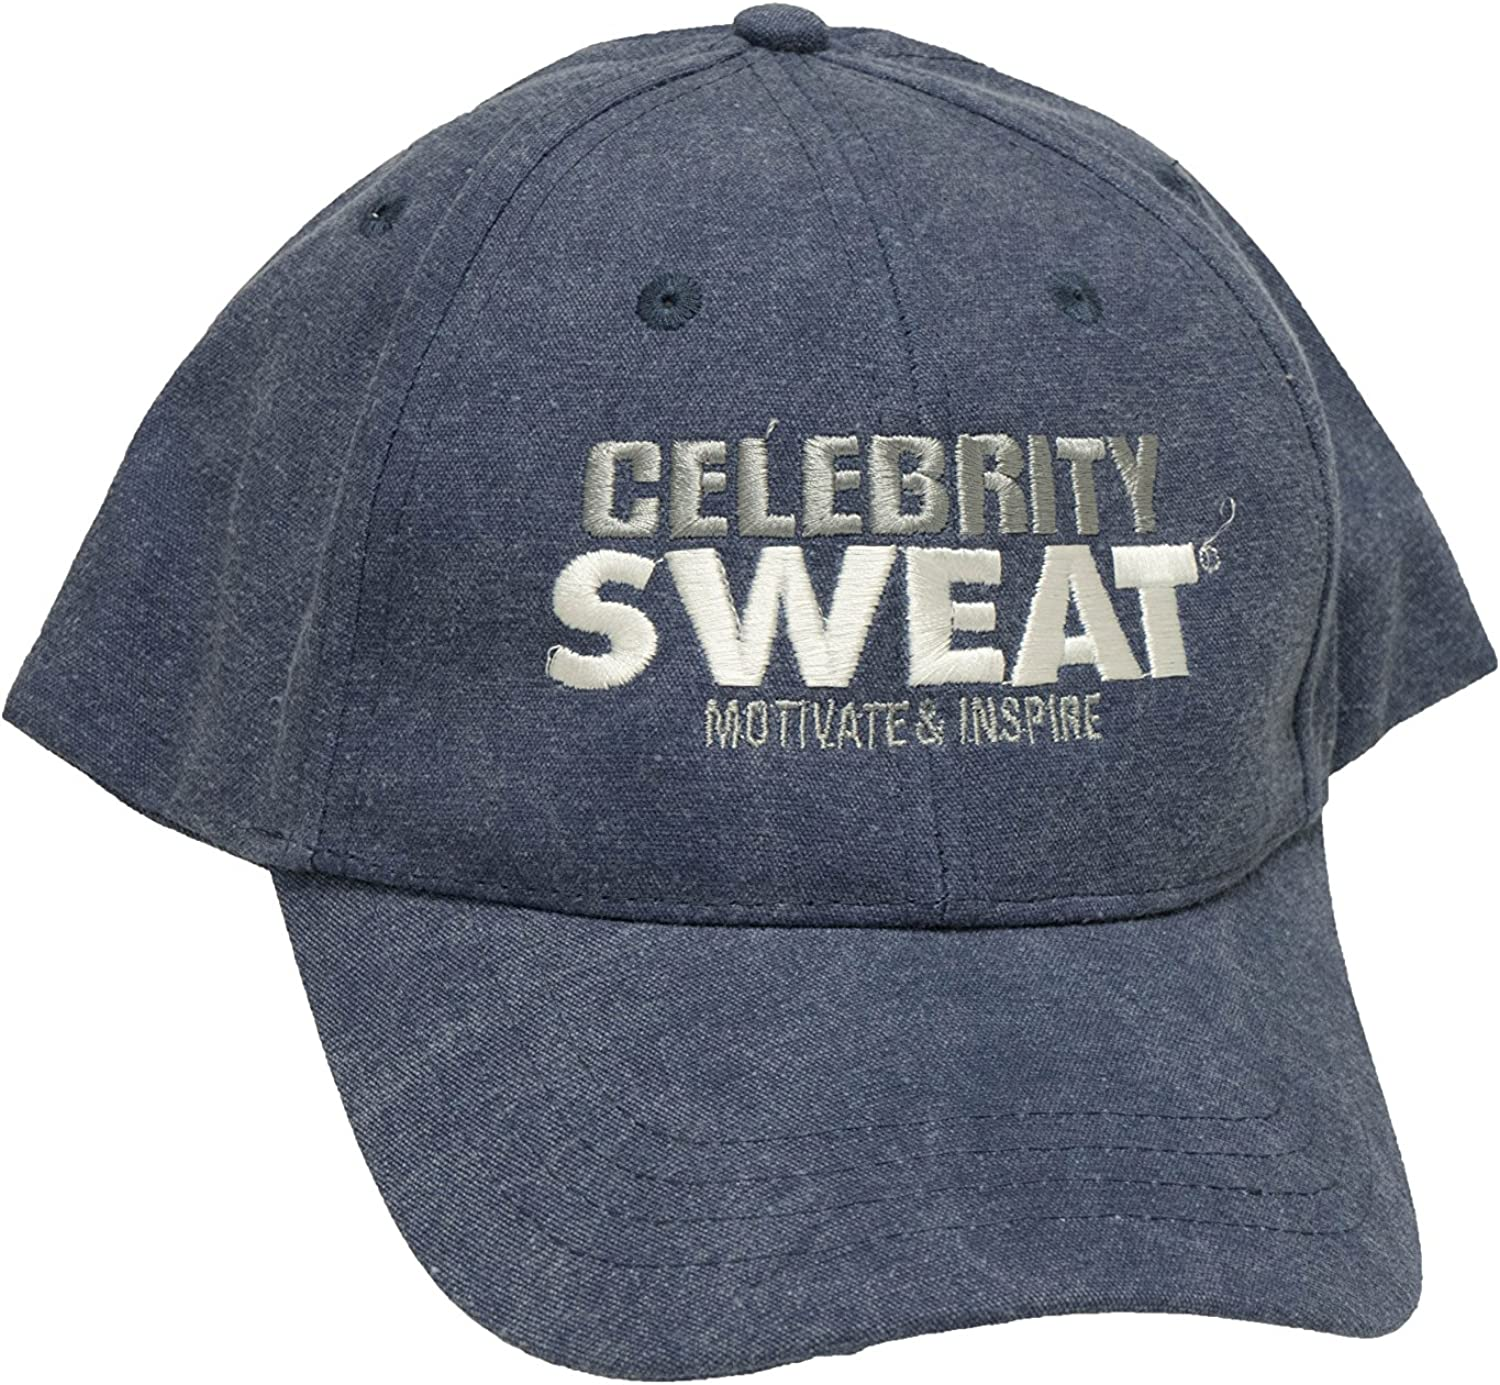 Celebrity Sweat Cap  bluee with White Grey Writing As Seen on TV